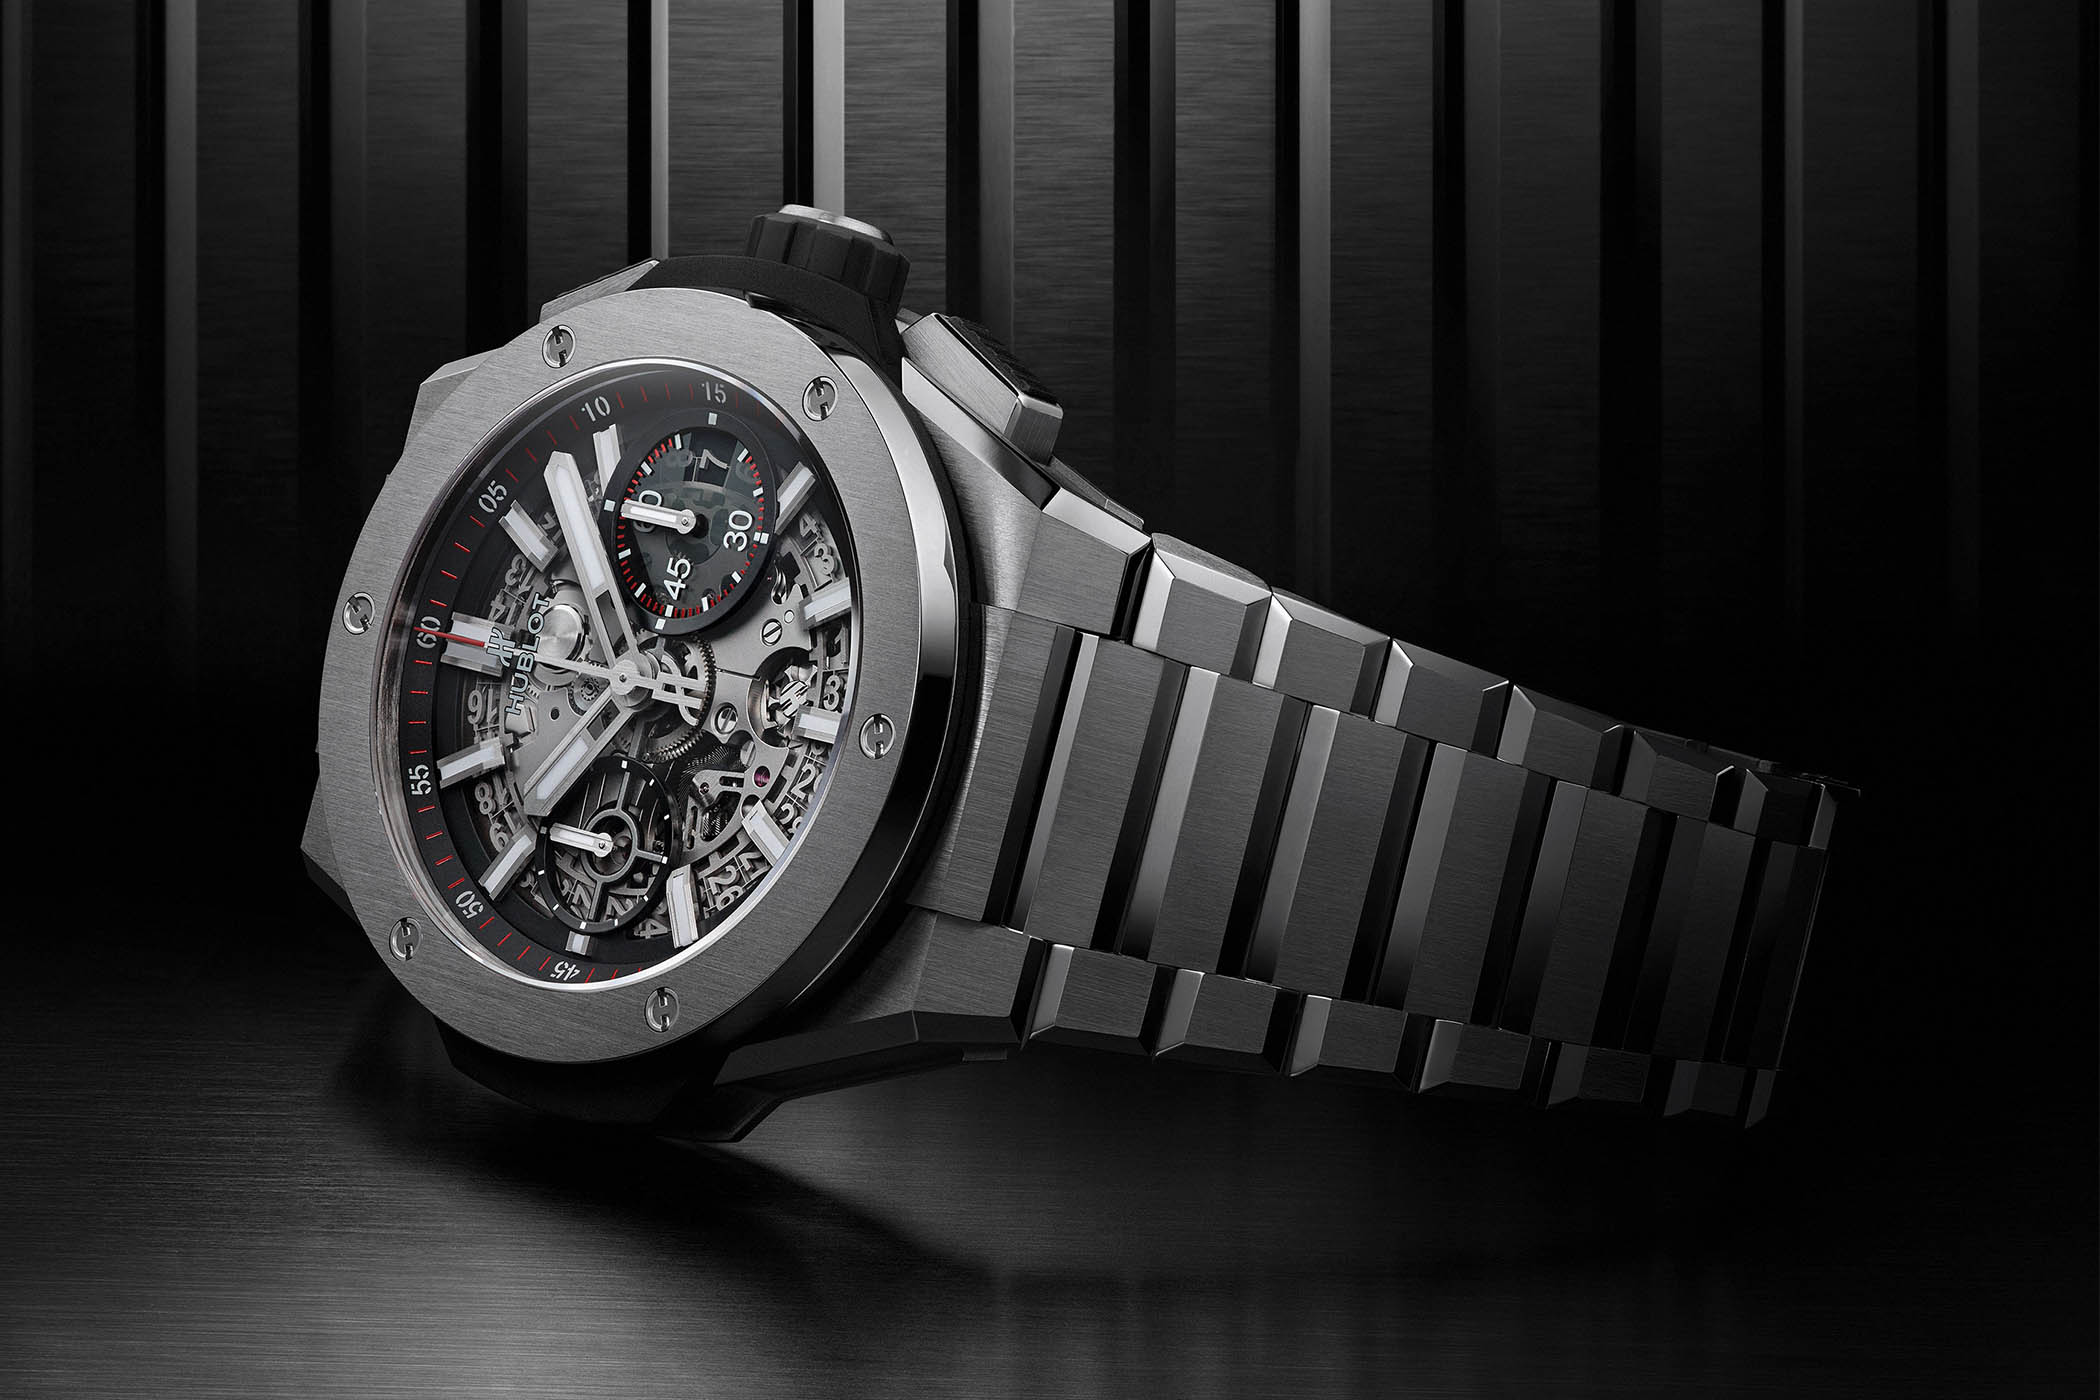 How could a humble watch bracelet win a watch fair? The Hublot Big Bang Integral just did exactly that, but why? How?